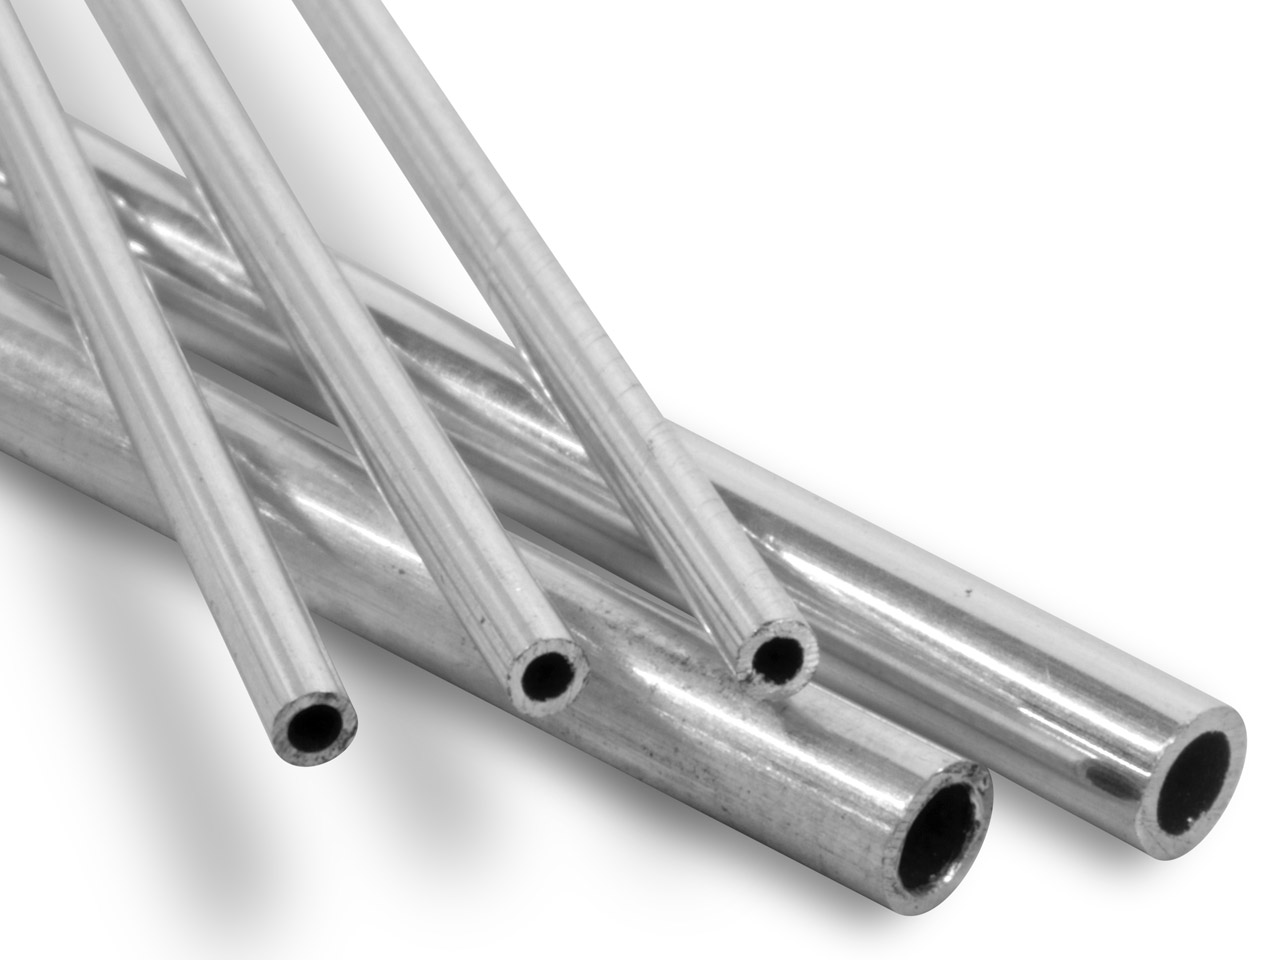 Sterling Silver Tube, Ref 9,       Outside Diameter 2.2mm,            Inside Diameter 1.4mm, 0.4mm Wall  Thickness